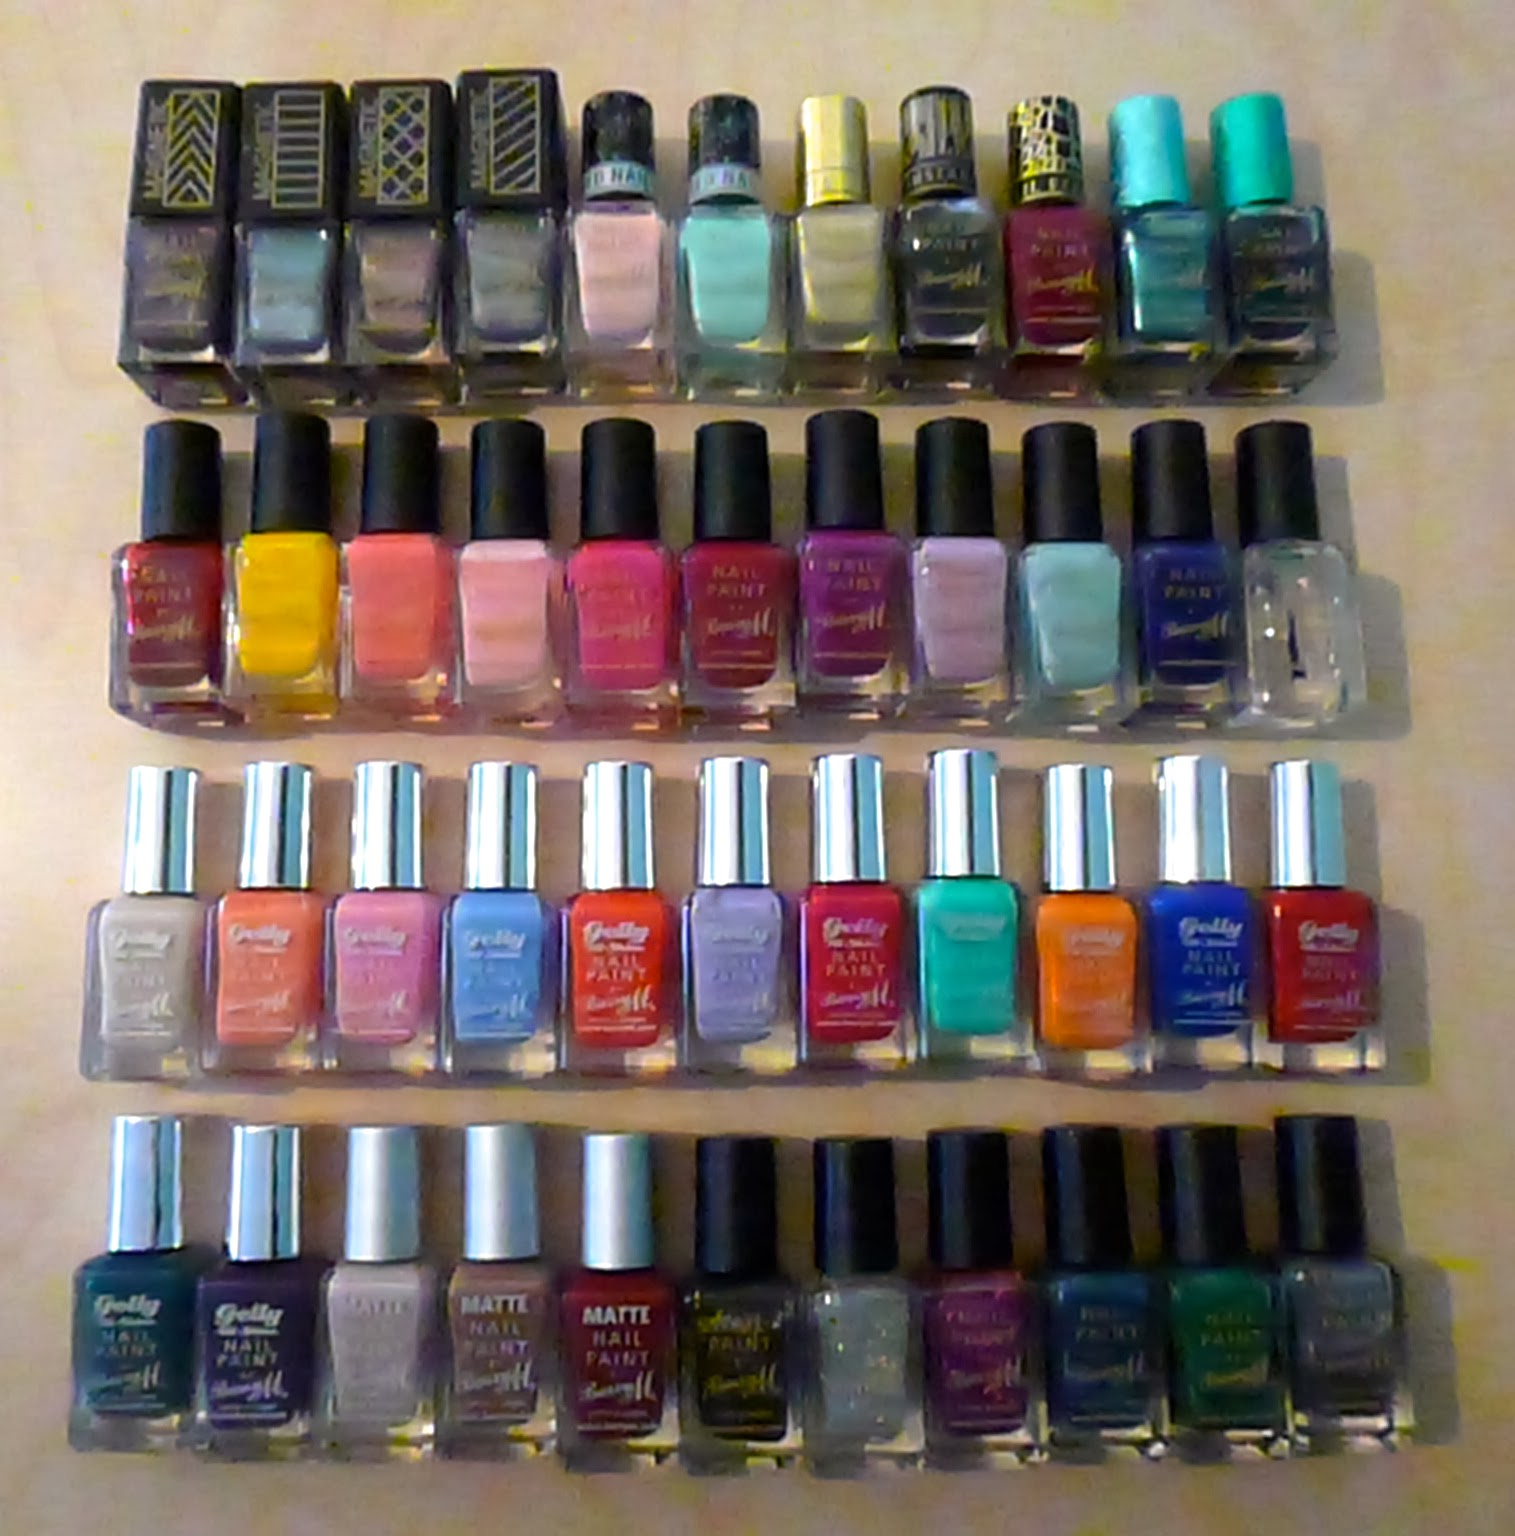 Finger Nail Paint: Hanclarky: My Barry M Nail Paint Collection